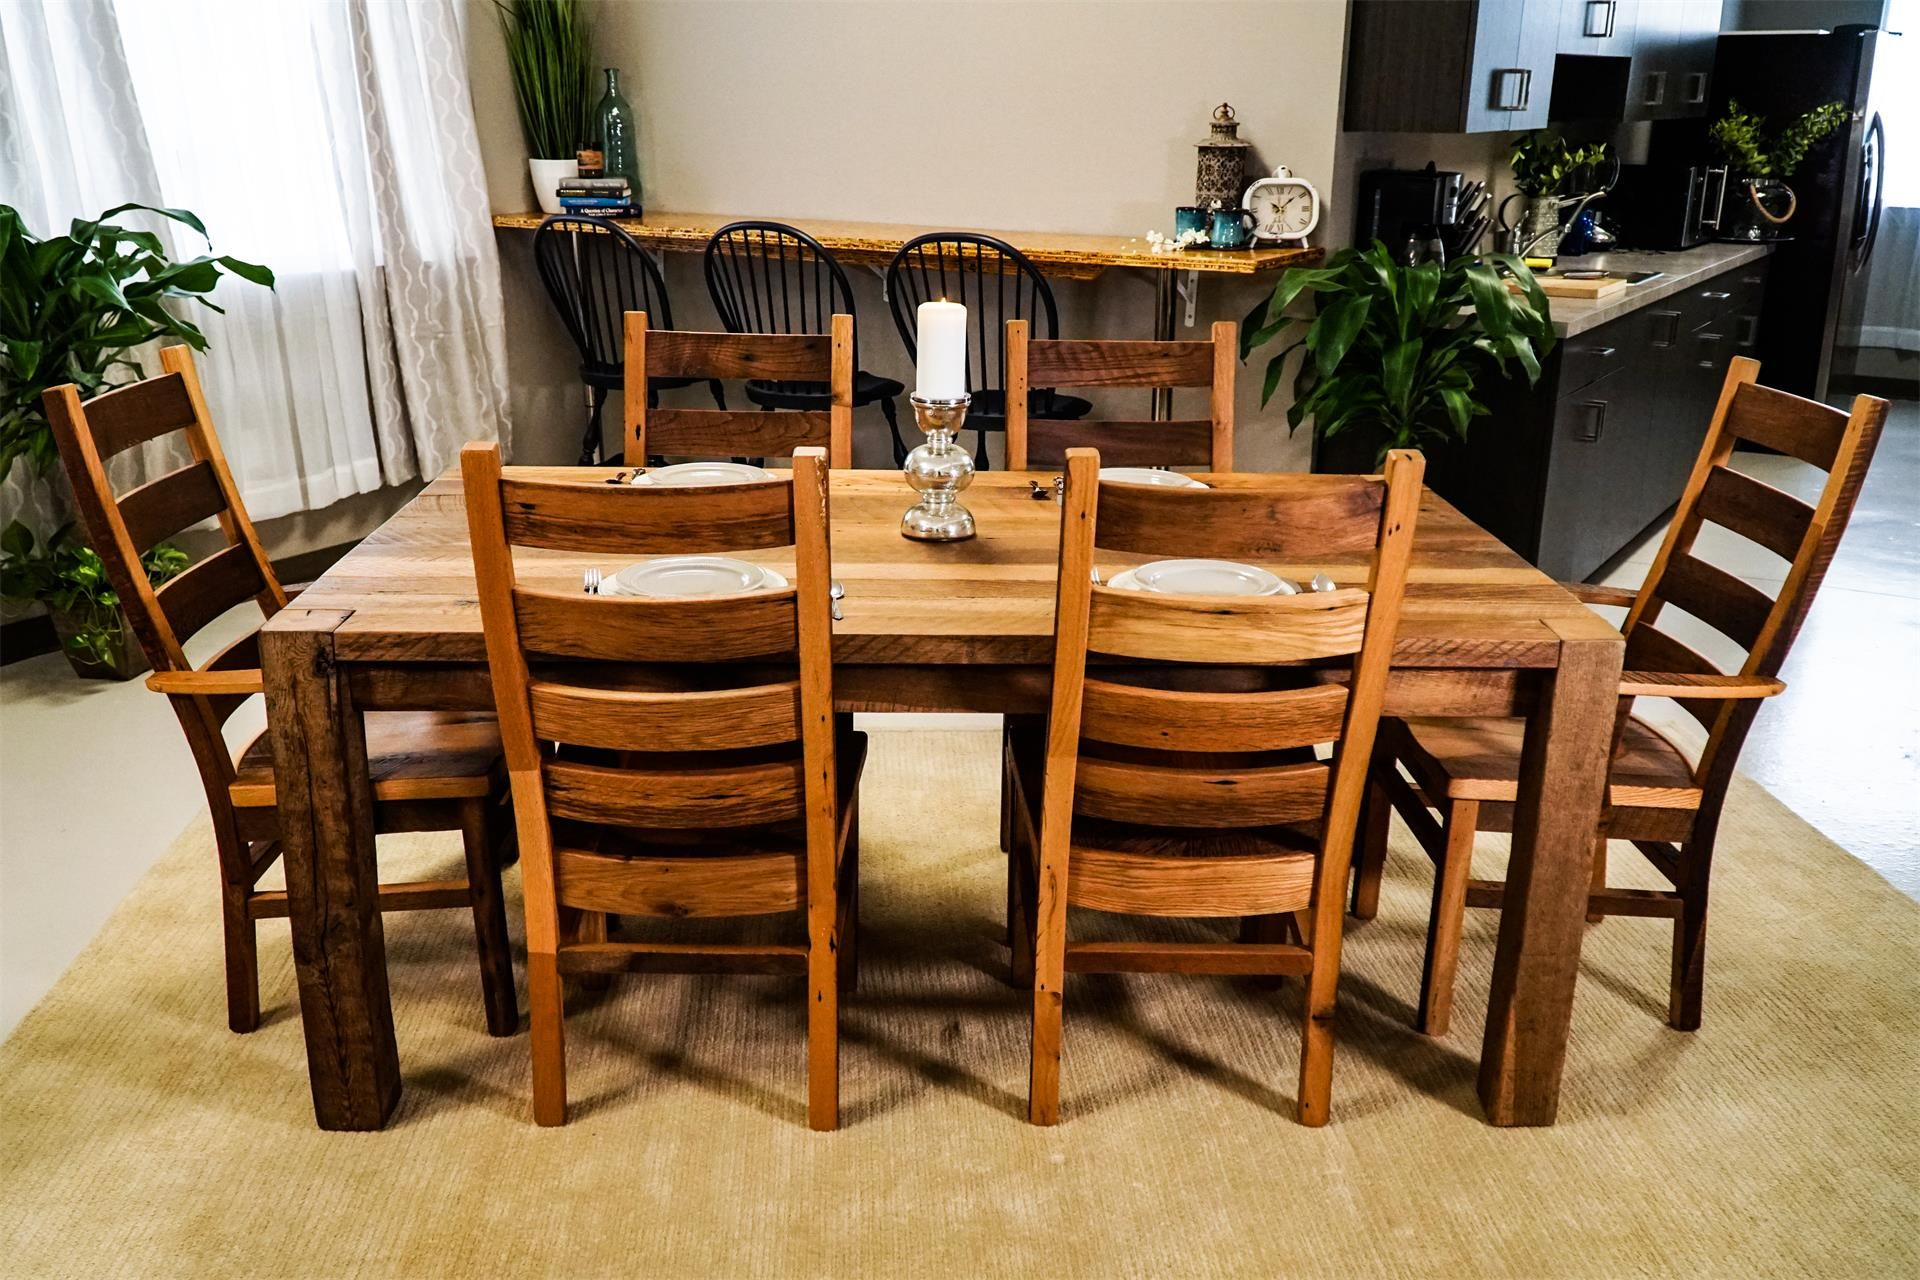 Images about old barn wood furniture on pinterest - Amish Reclaimed Wood Furniture